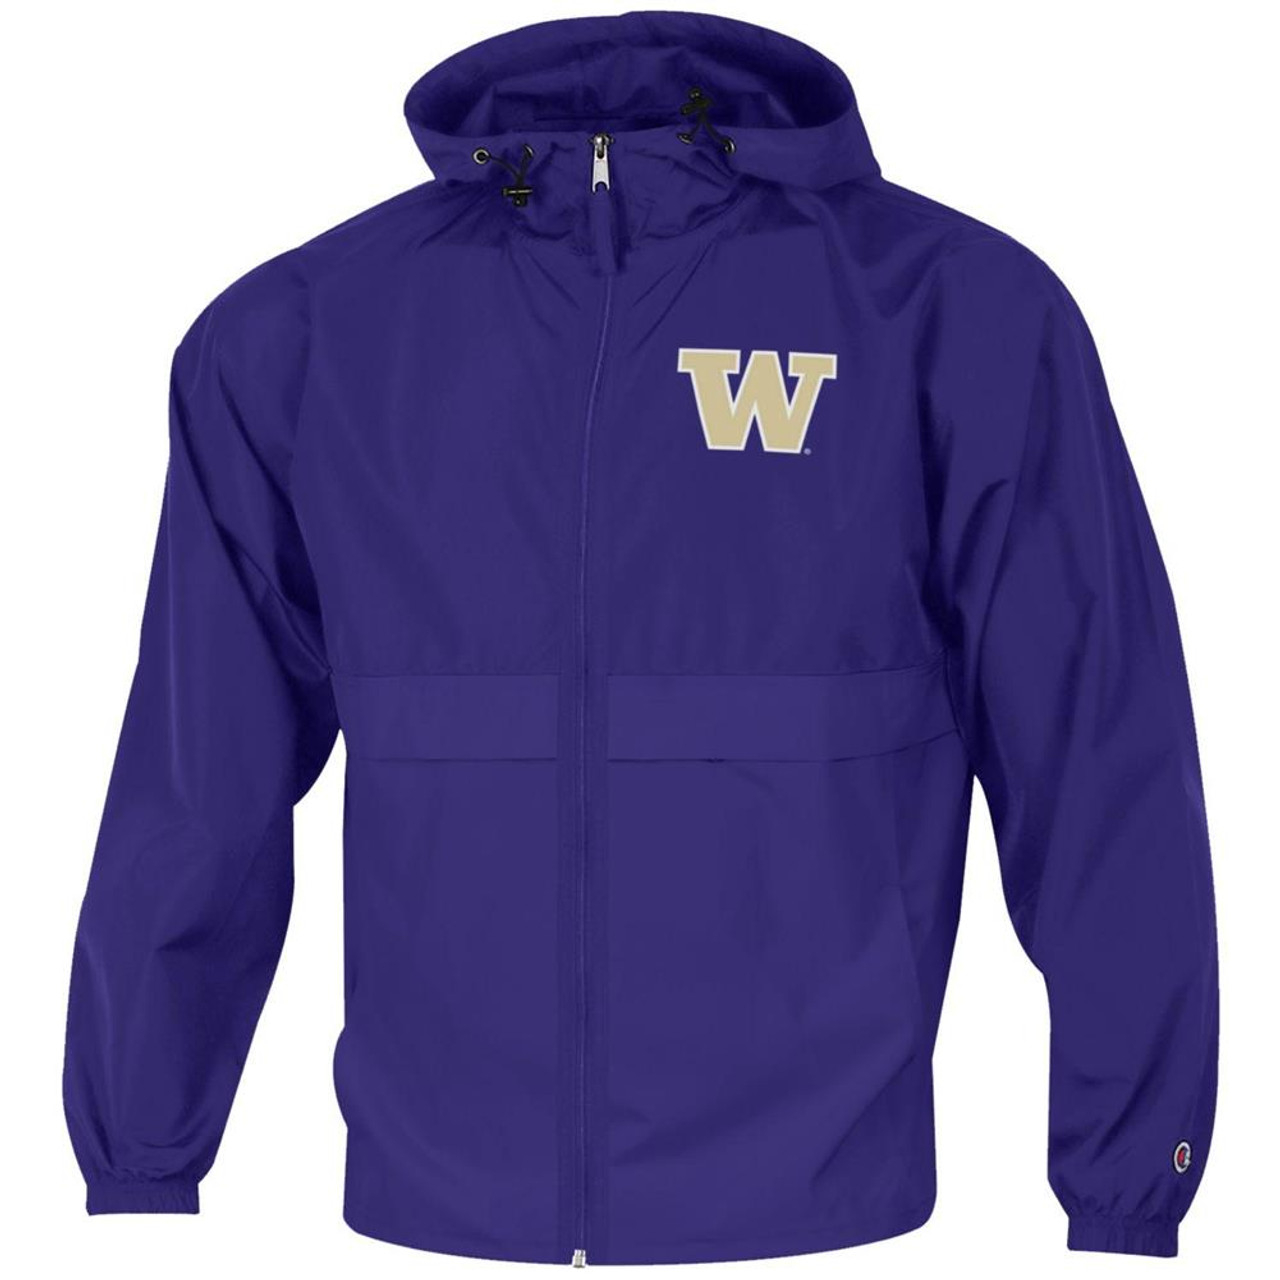 Men's University of Washington Jacket Full Zip Windbreaker Jacket